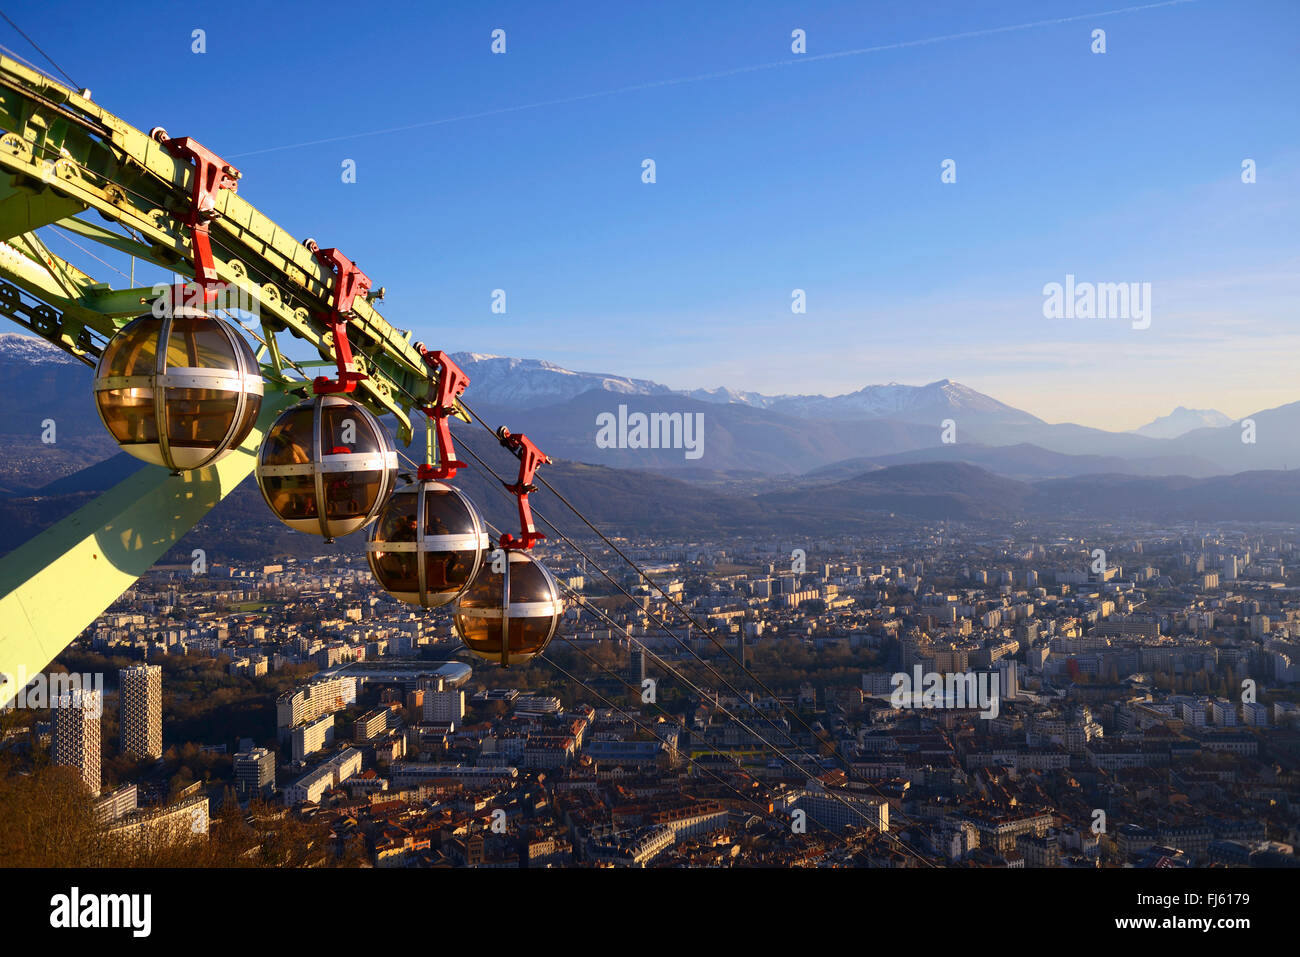 Cable car of Bastille over the town of Grenoble, France, Isere - Stock Image